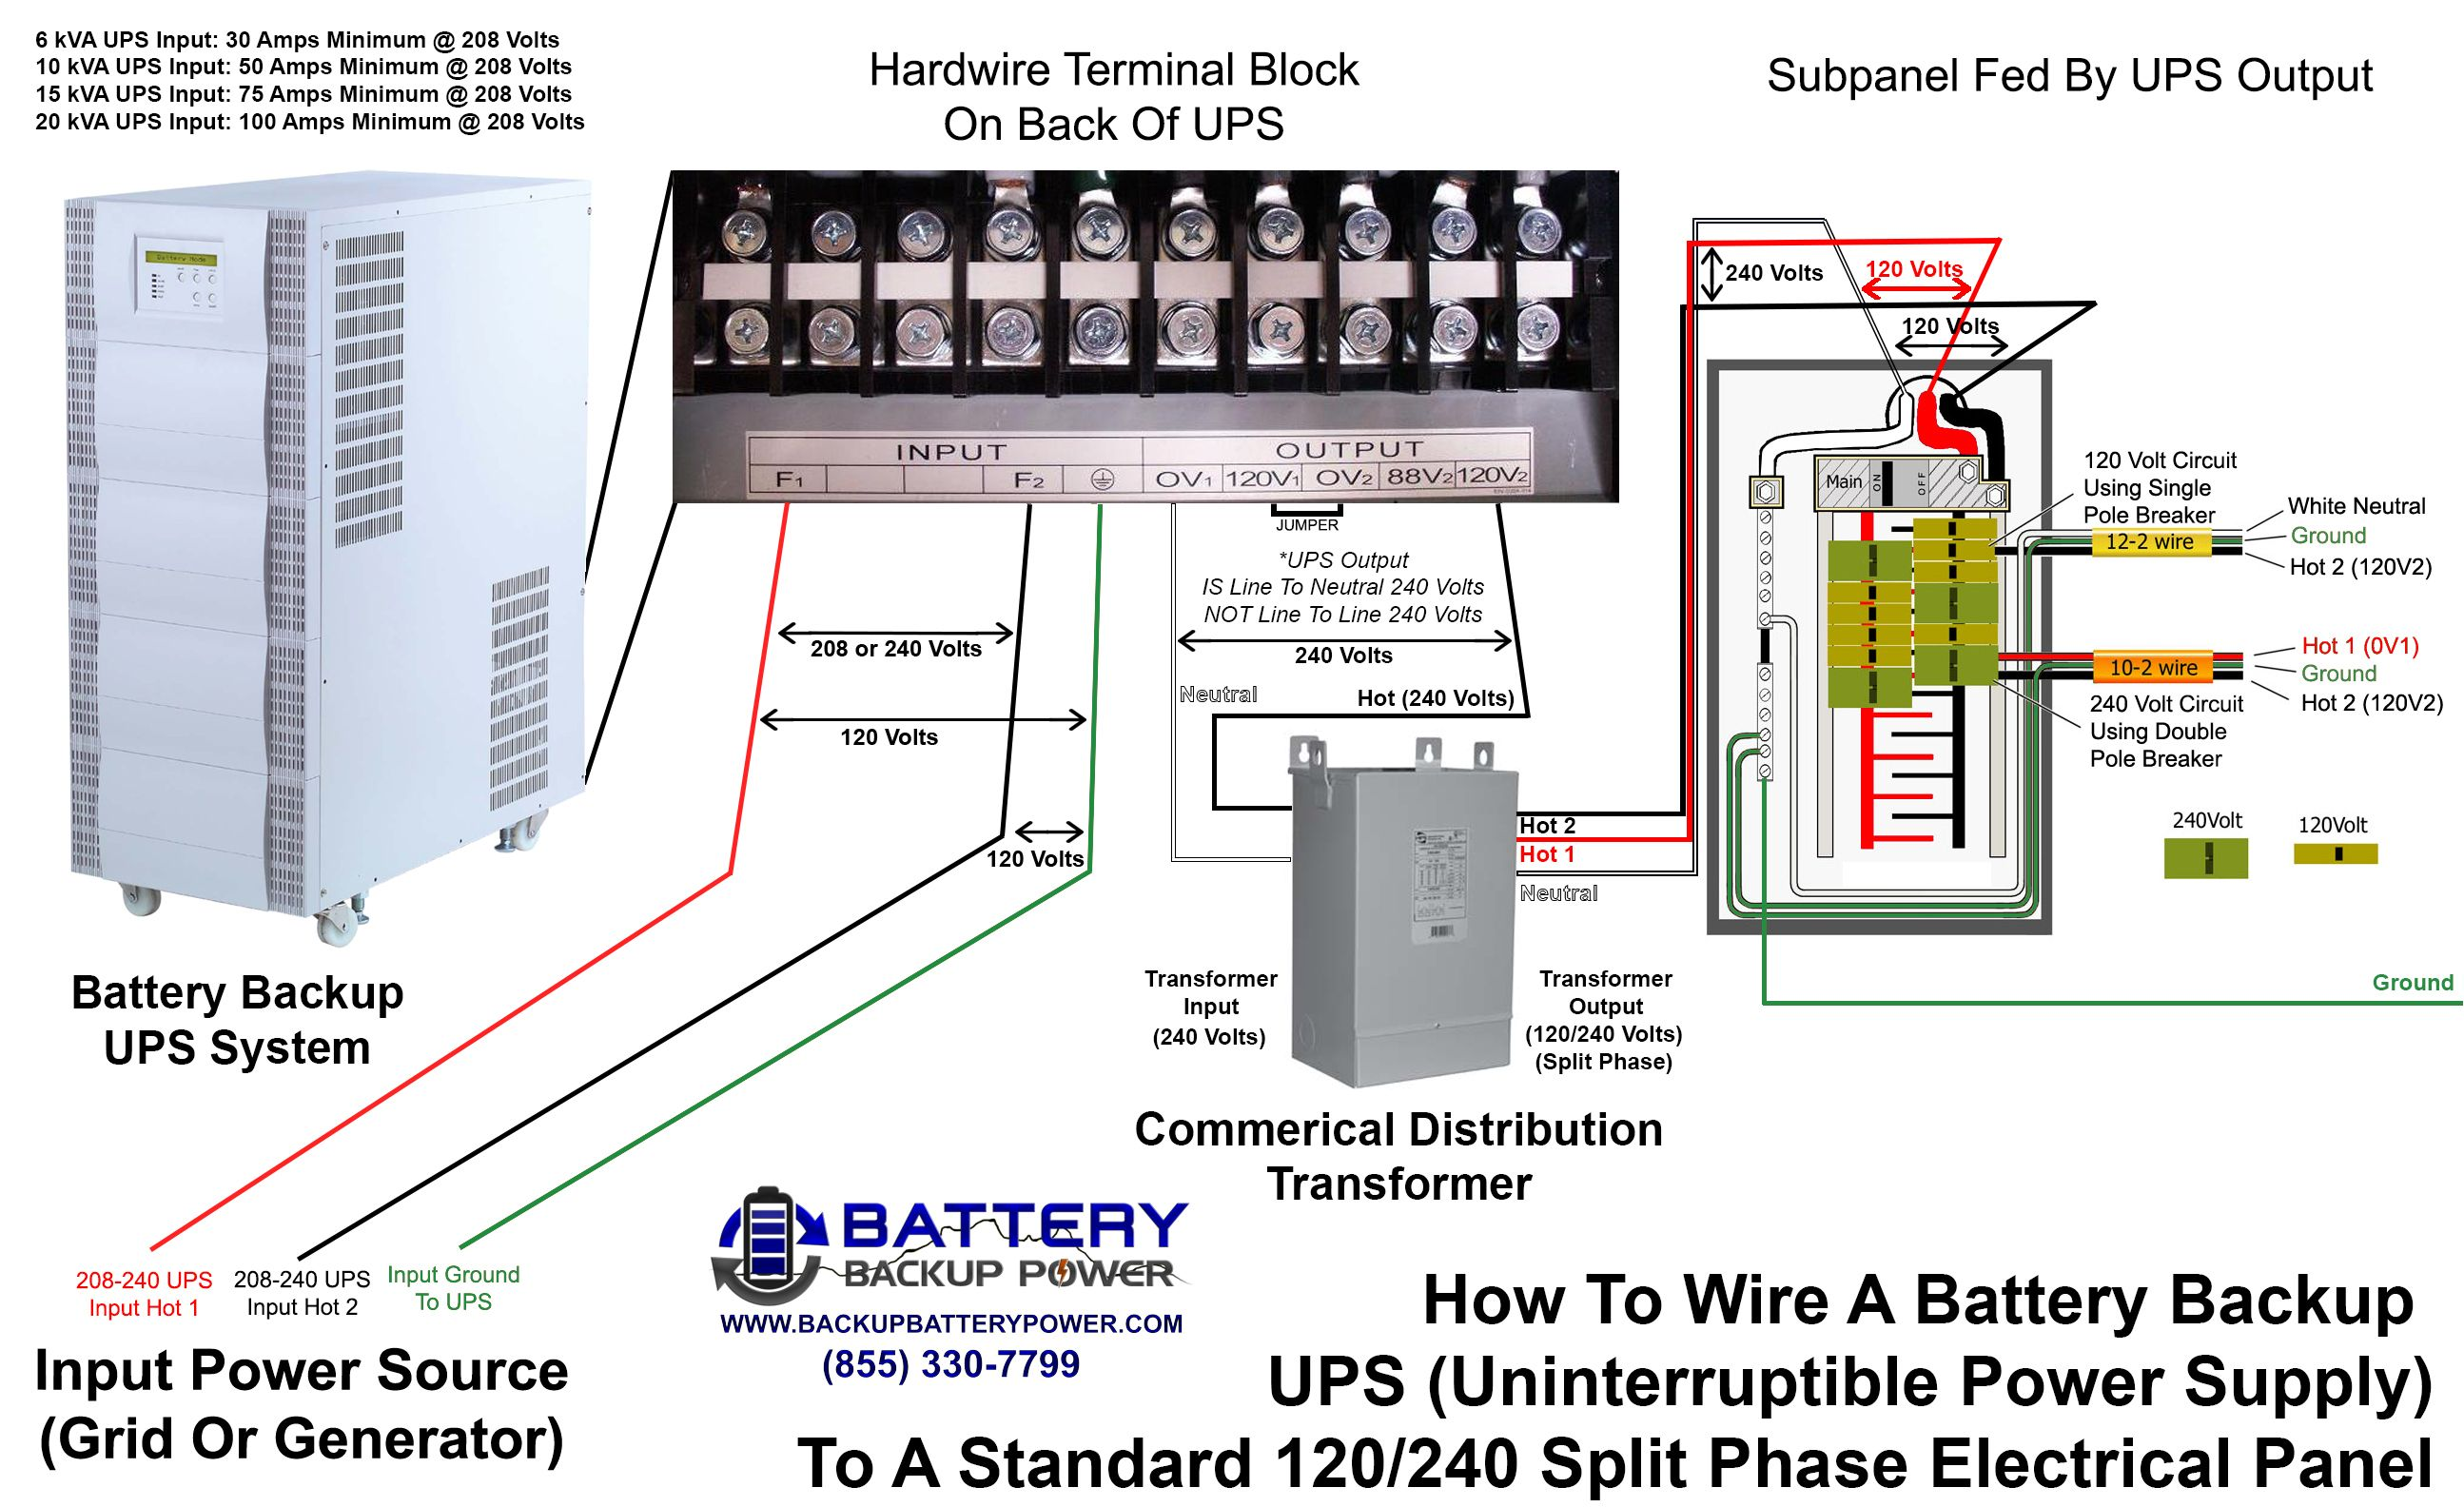 Ups Electrical Wiring Diagram 2002 Dodge Trailer How To Wire A Standard 120 240 Split Phase